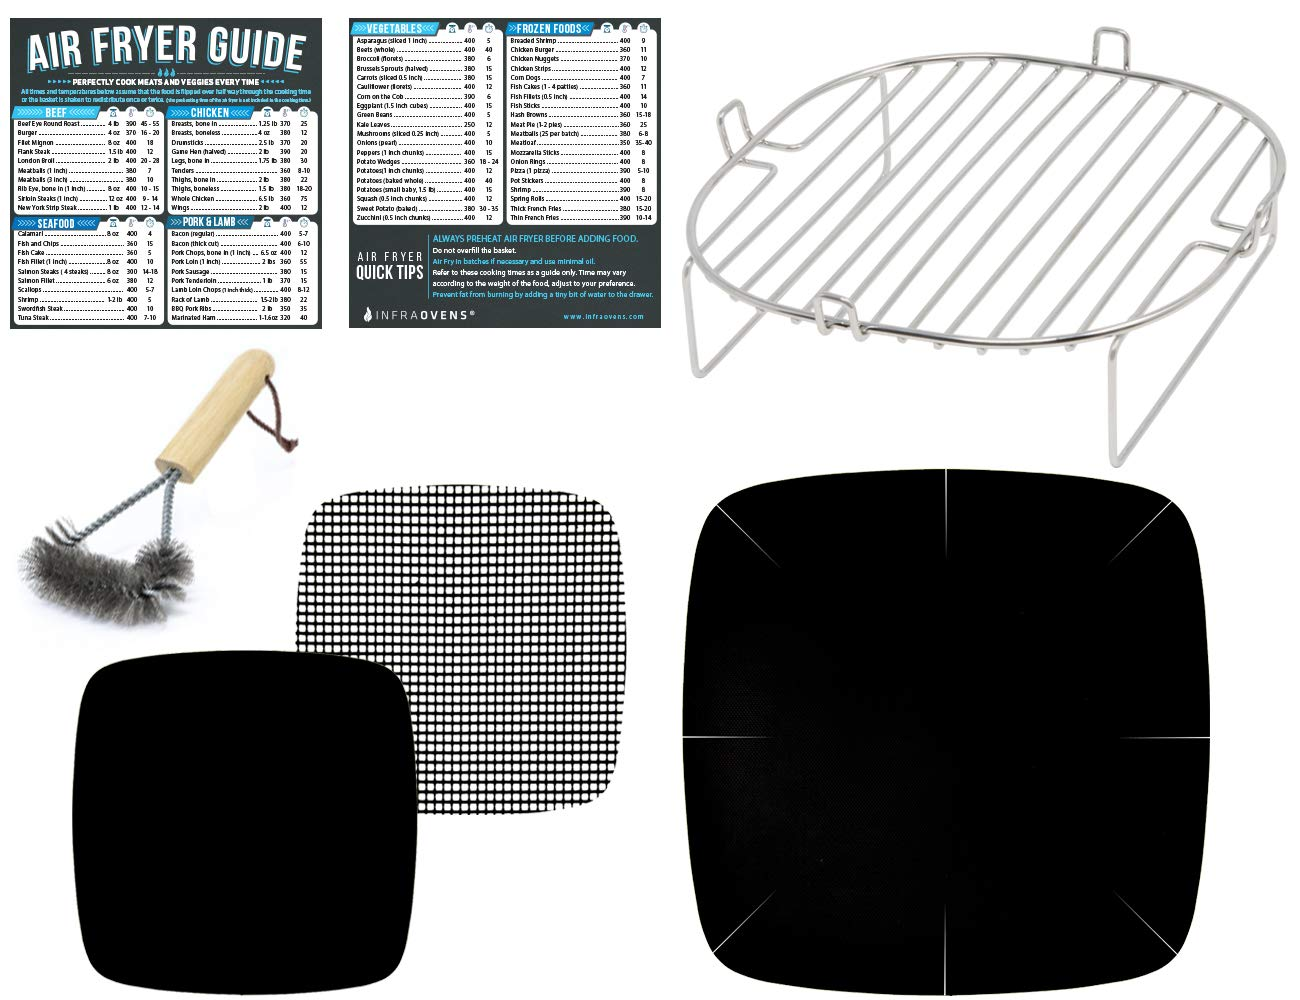 Air Fryer Accessories Compatible with Kuppet, NuWave Brio 3 QT, Bagotte, Costzon, Dash 10 Liter, Philips XL +More | Stainless Steel Rack, Magnetic Cheat Sheet Guide for Cooking & Baking | Small